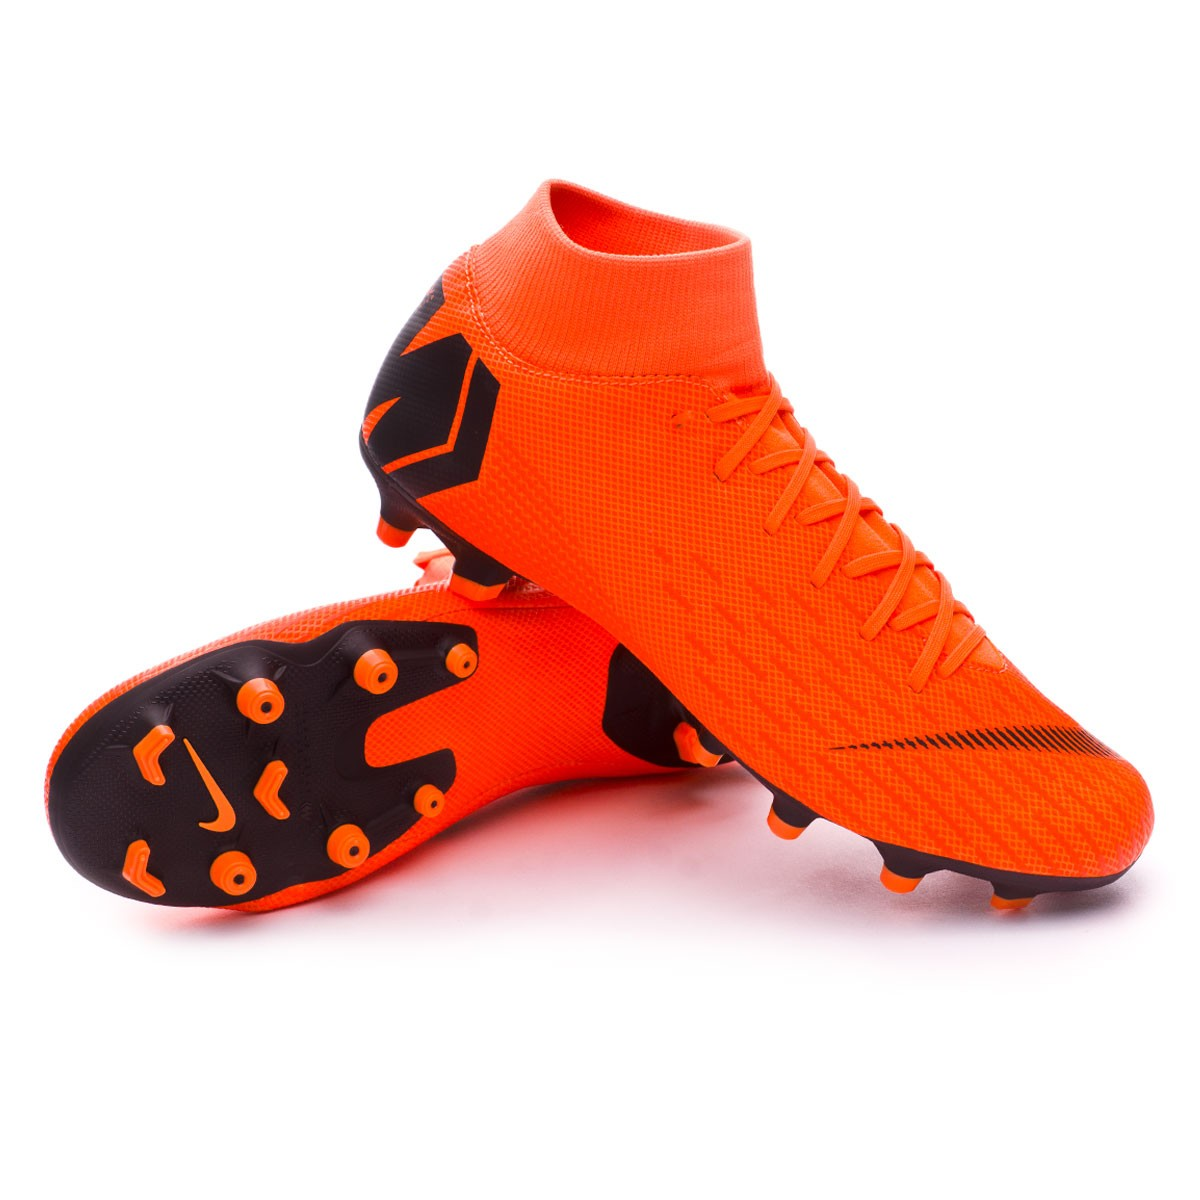 5f675ddd757 Chuteira Nike Mercurial Superfly VI Academy MG Total orange-Black ...